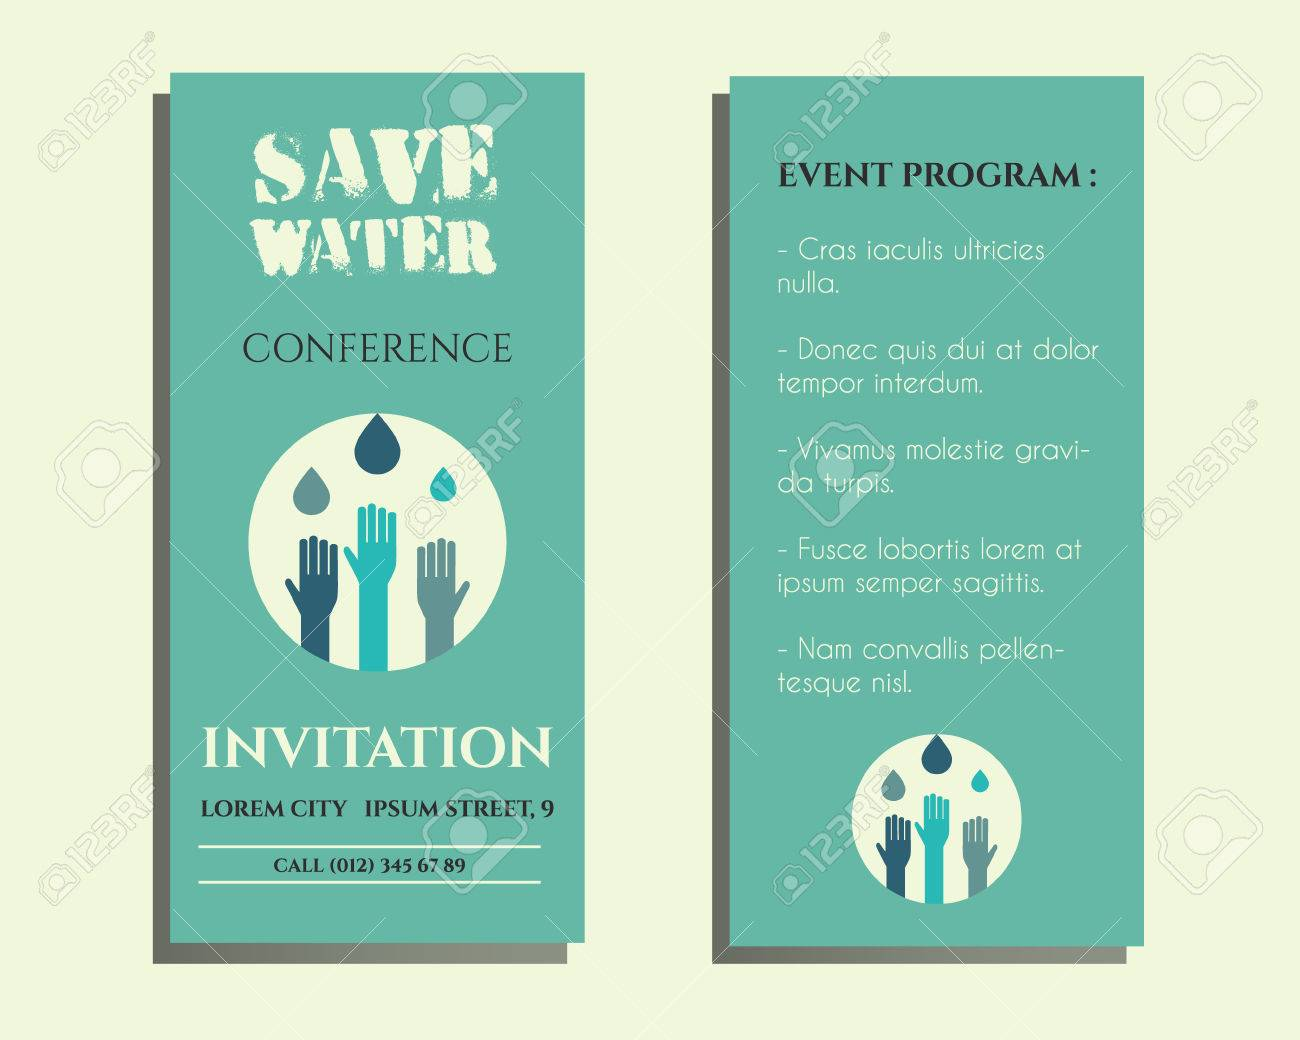 Save water conference flyer invitation template with drops and save water conference flyer invitation template with drops and hands logo template isolated on bright stopboris Images